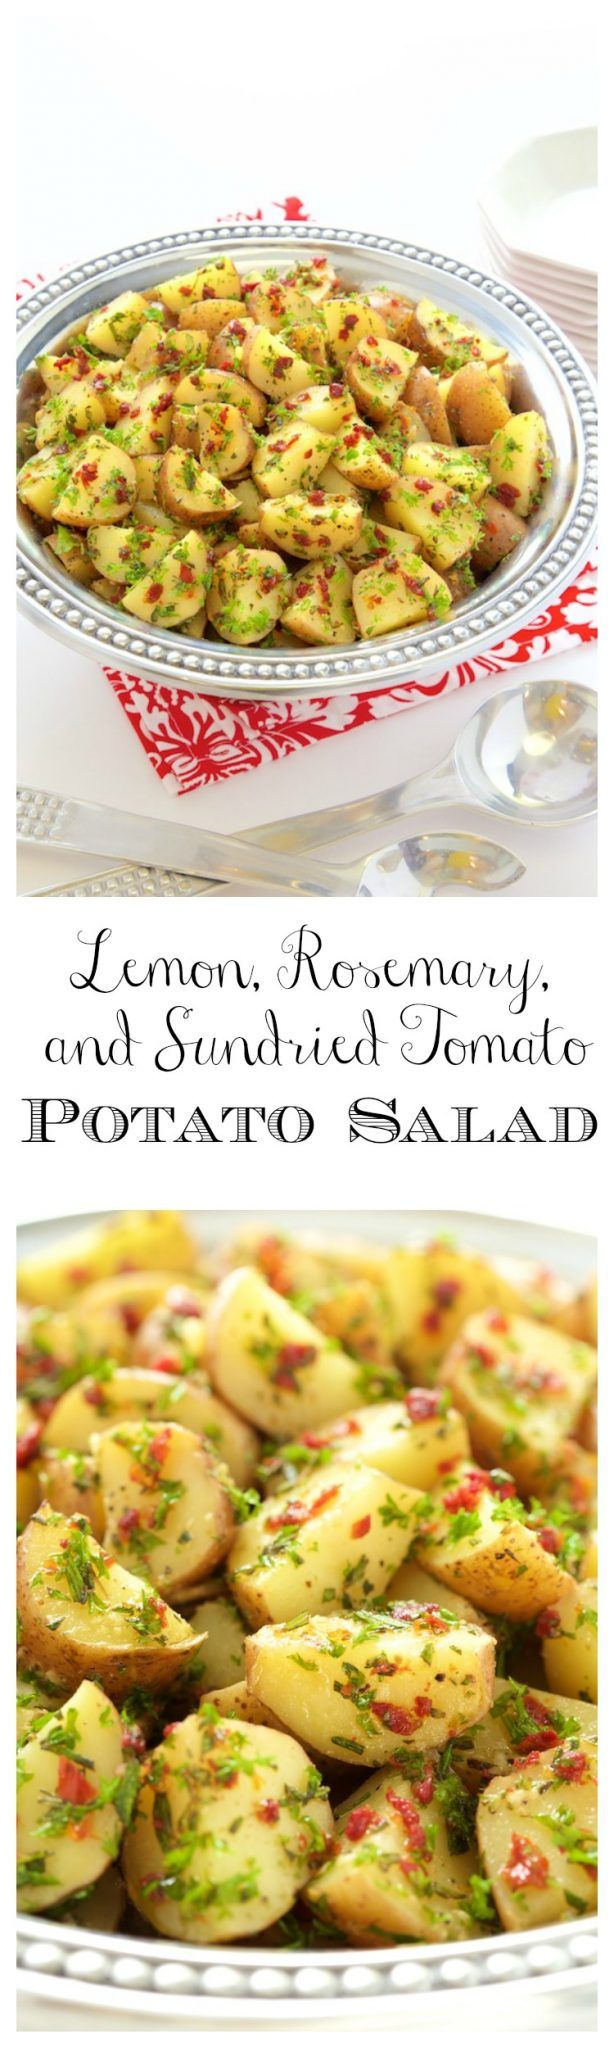 Lemon, Rosemary and Sundried Tomato Potato Salad - a simple, delicious, no Mayo potato salad that everyone loves!